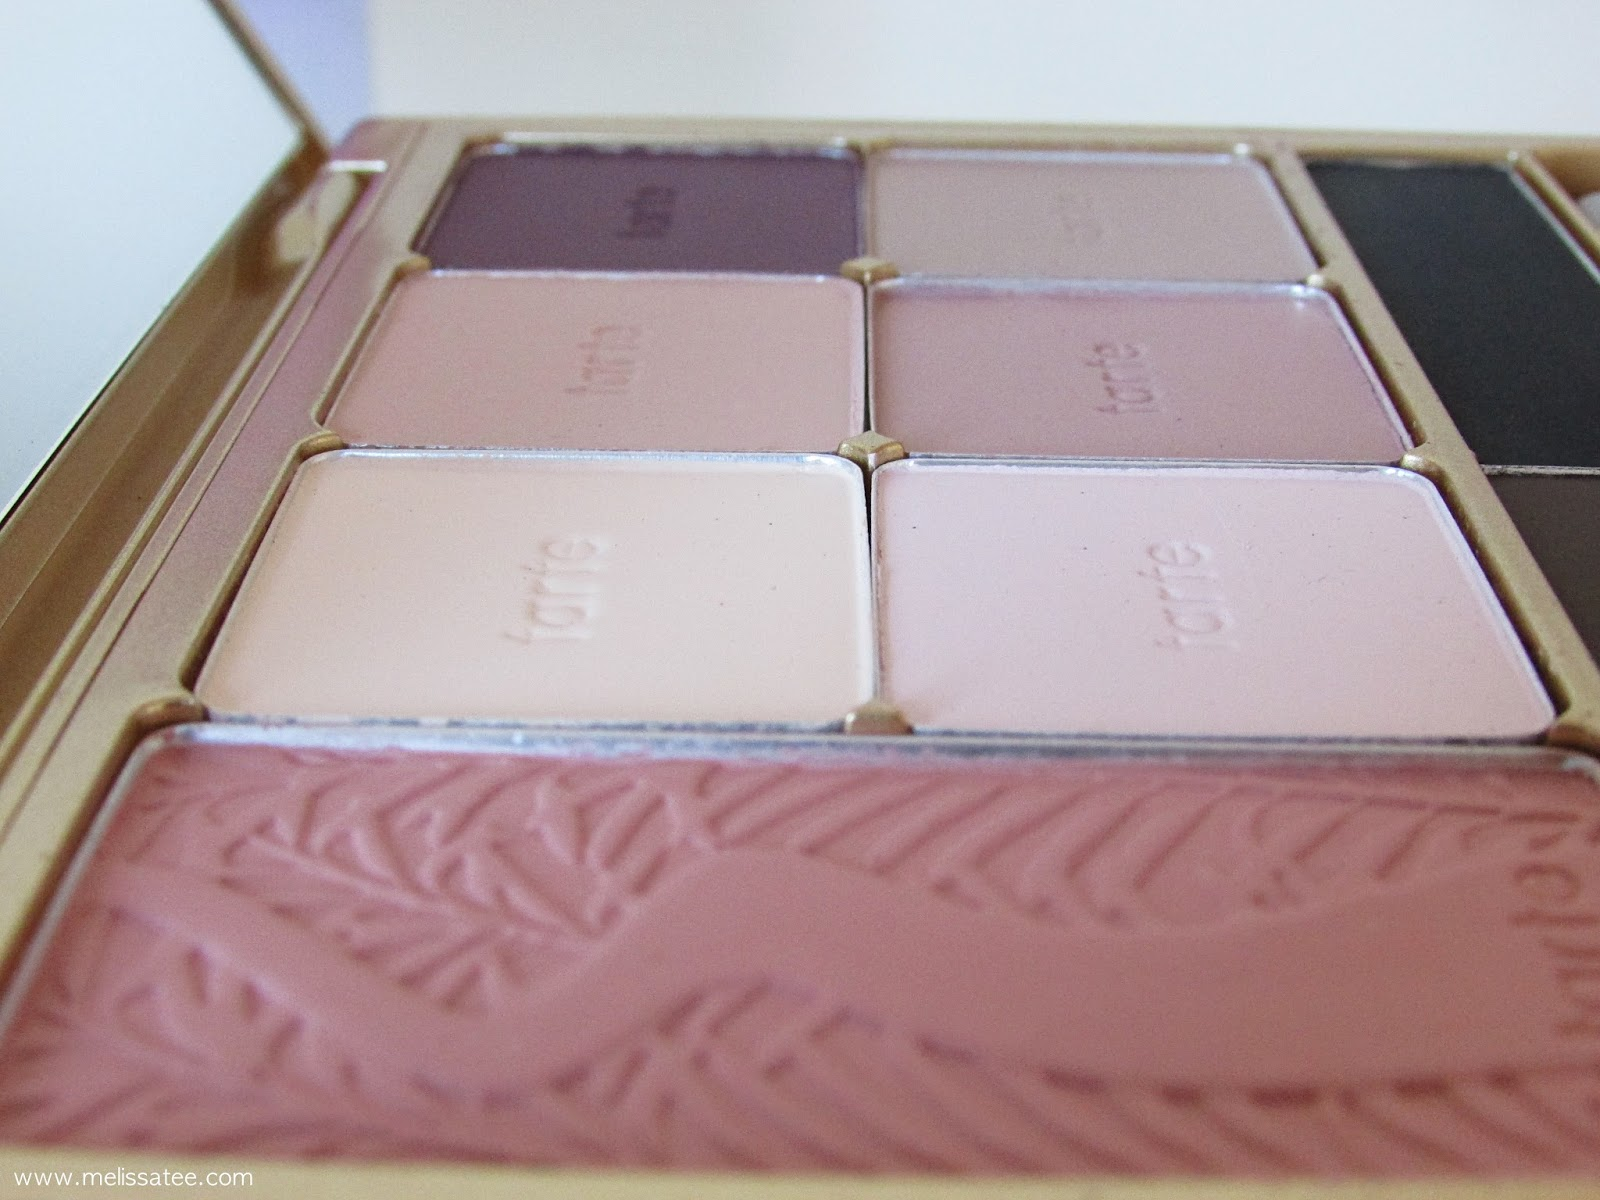 tarte, tarte palette, tarte be mattenificent, tarte be mattenificent palette, eyeshadow palette, tarte eyeshadow palettea